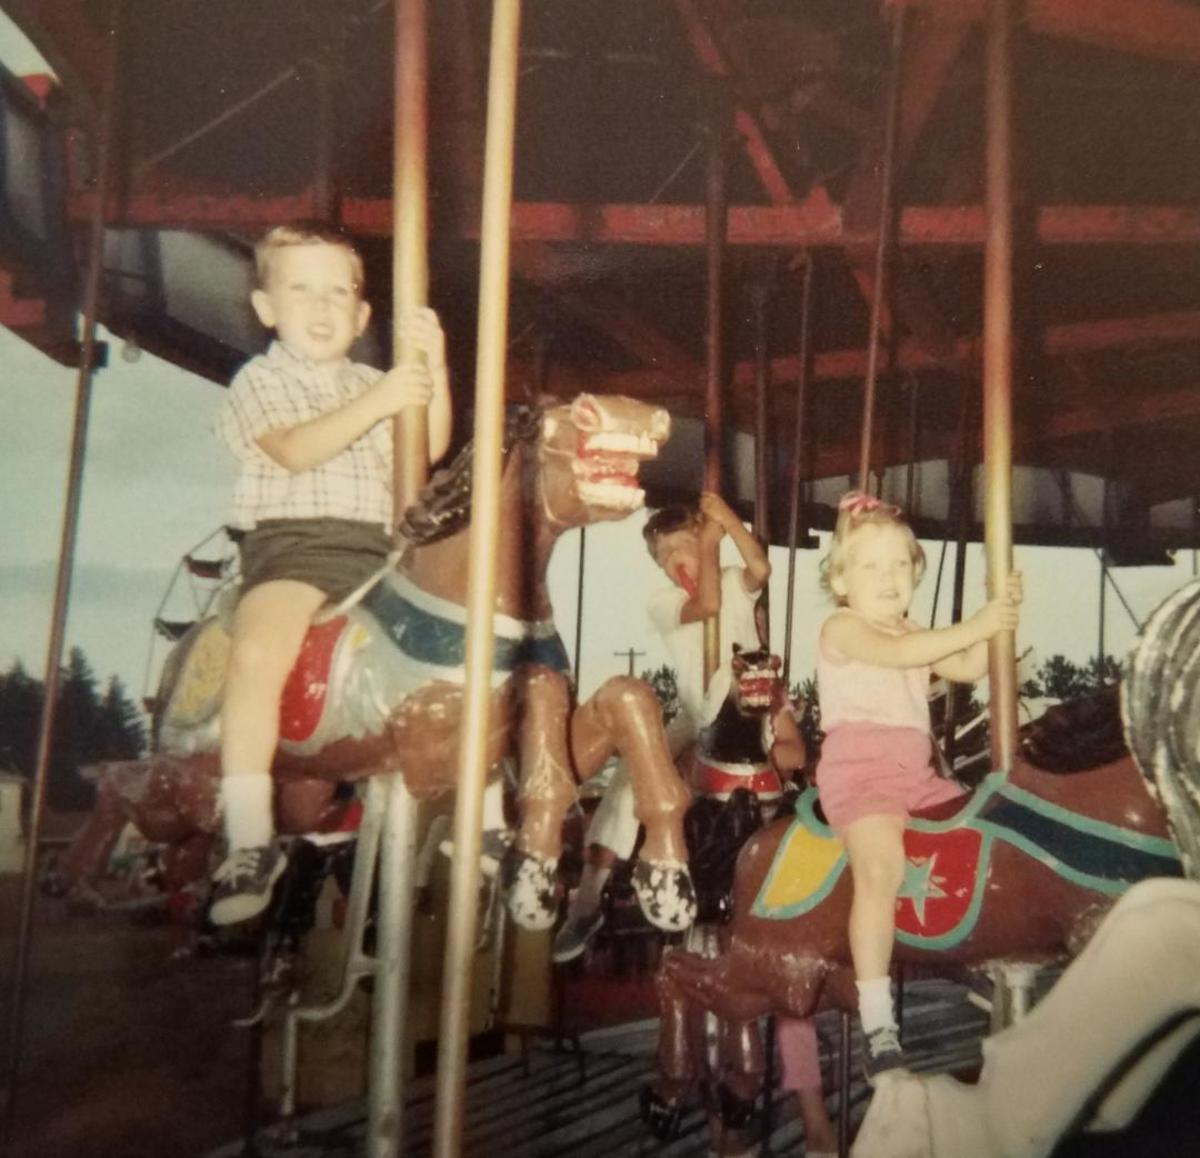 A favorite childhood memory: My brother and I riding the carousel at Scovill Zoo about 1969.